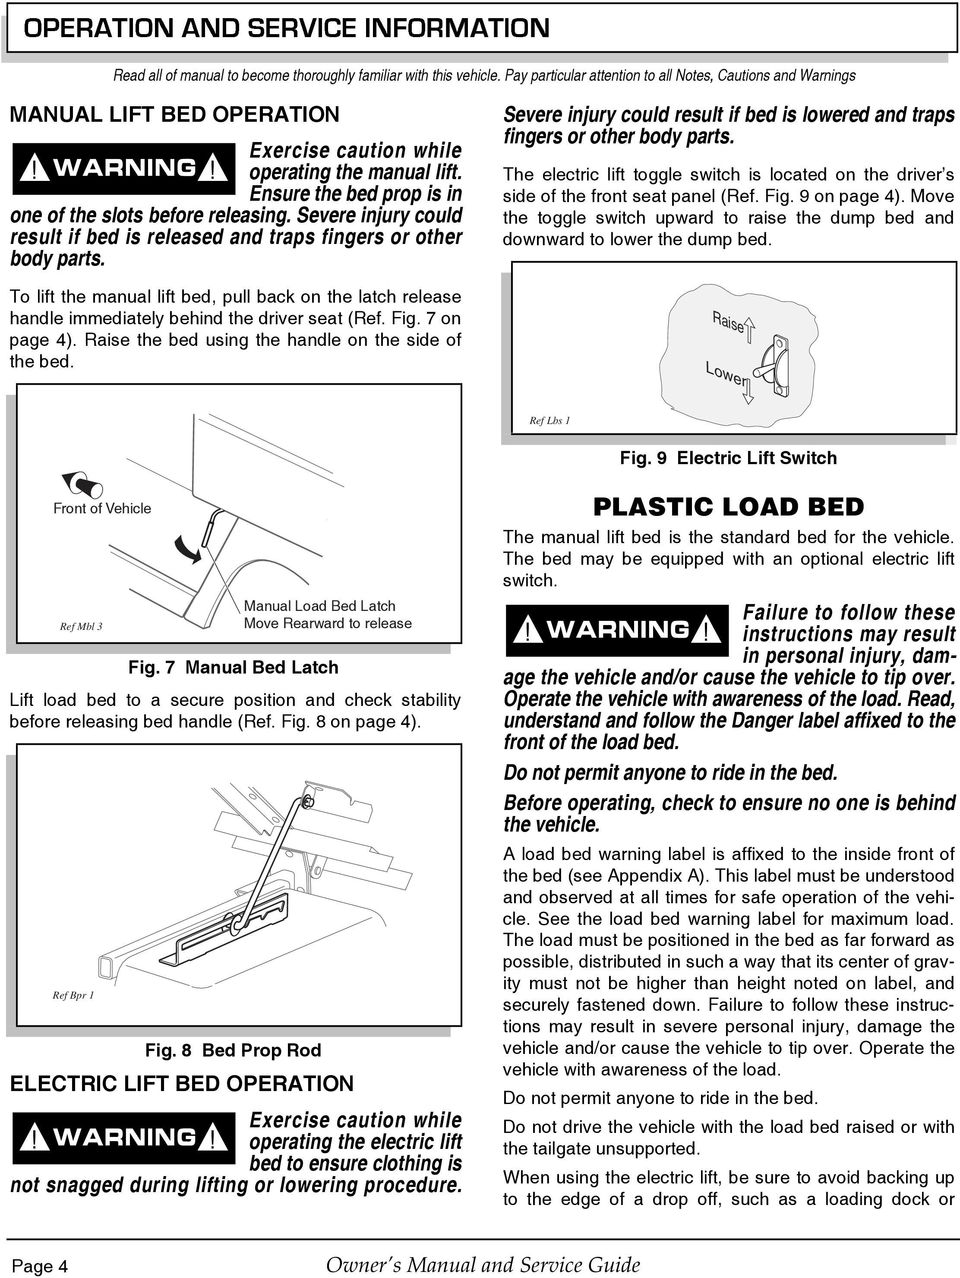 To lift the manual lift bed, pull back on the latch release handle immediately behind the driver seat (Ref. Fig. 7 on page 4). Raise the bed using the handle on the side of the bed.